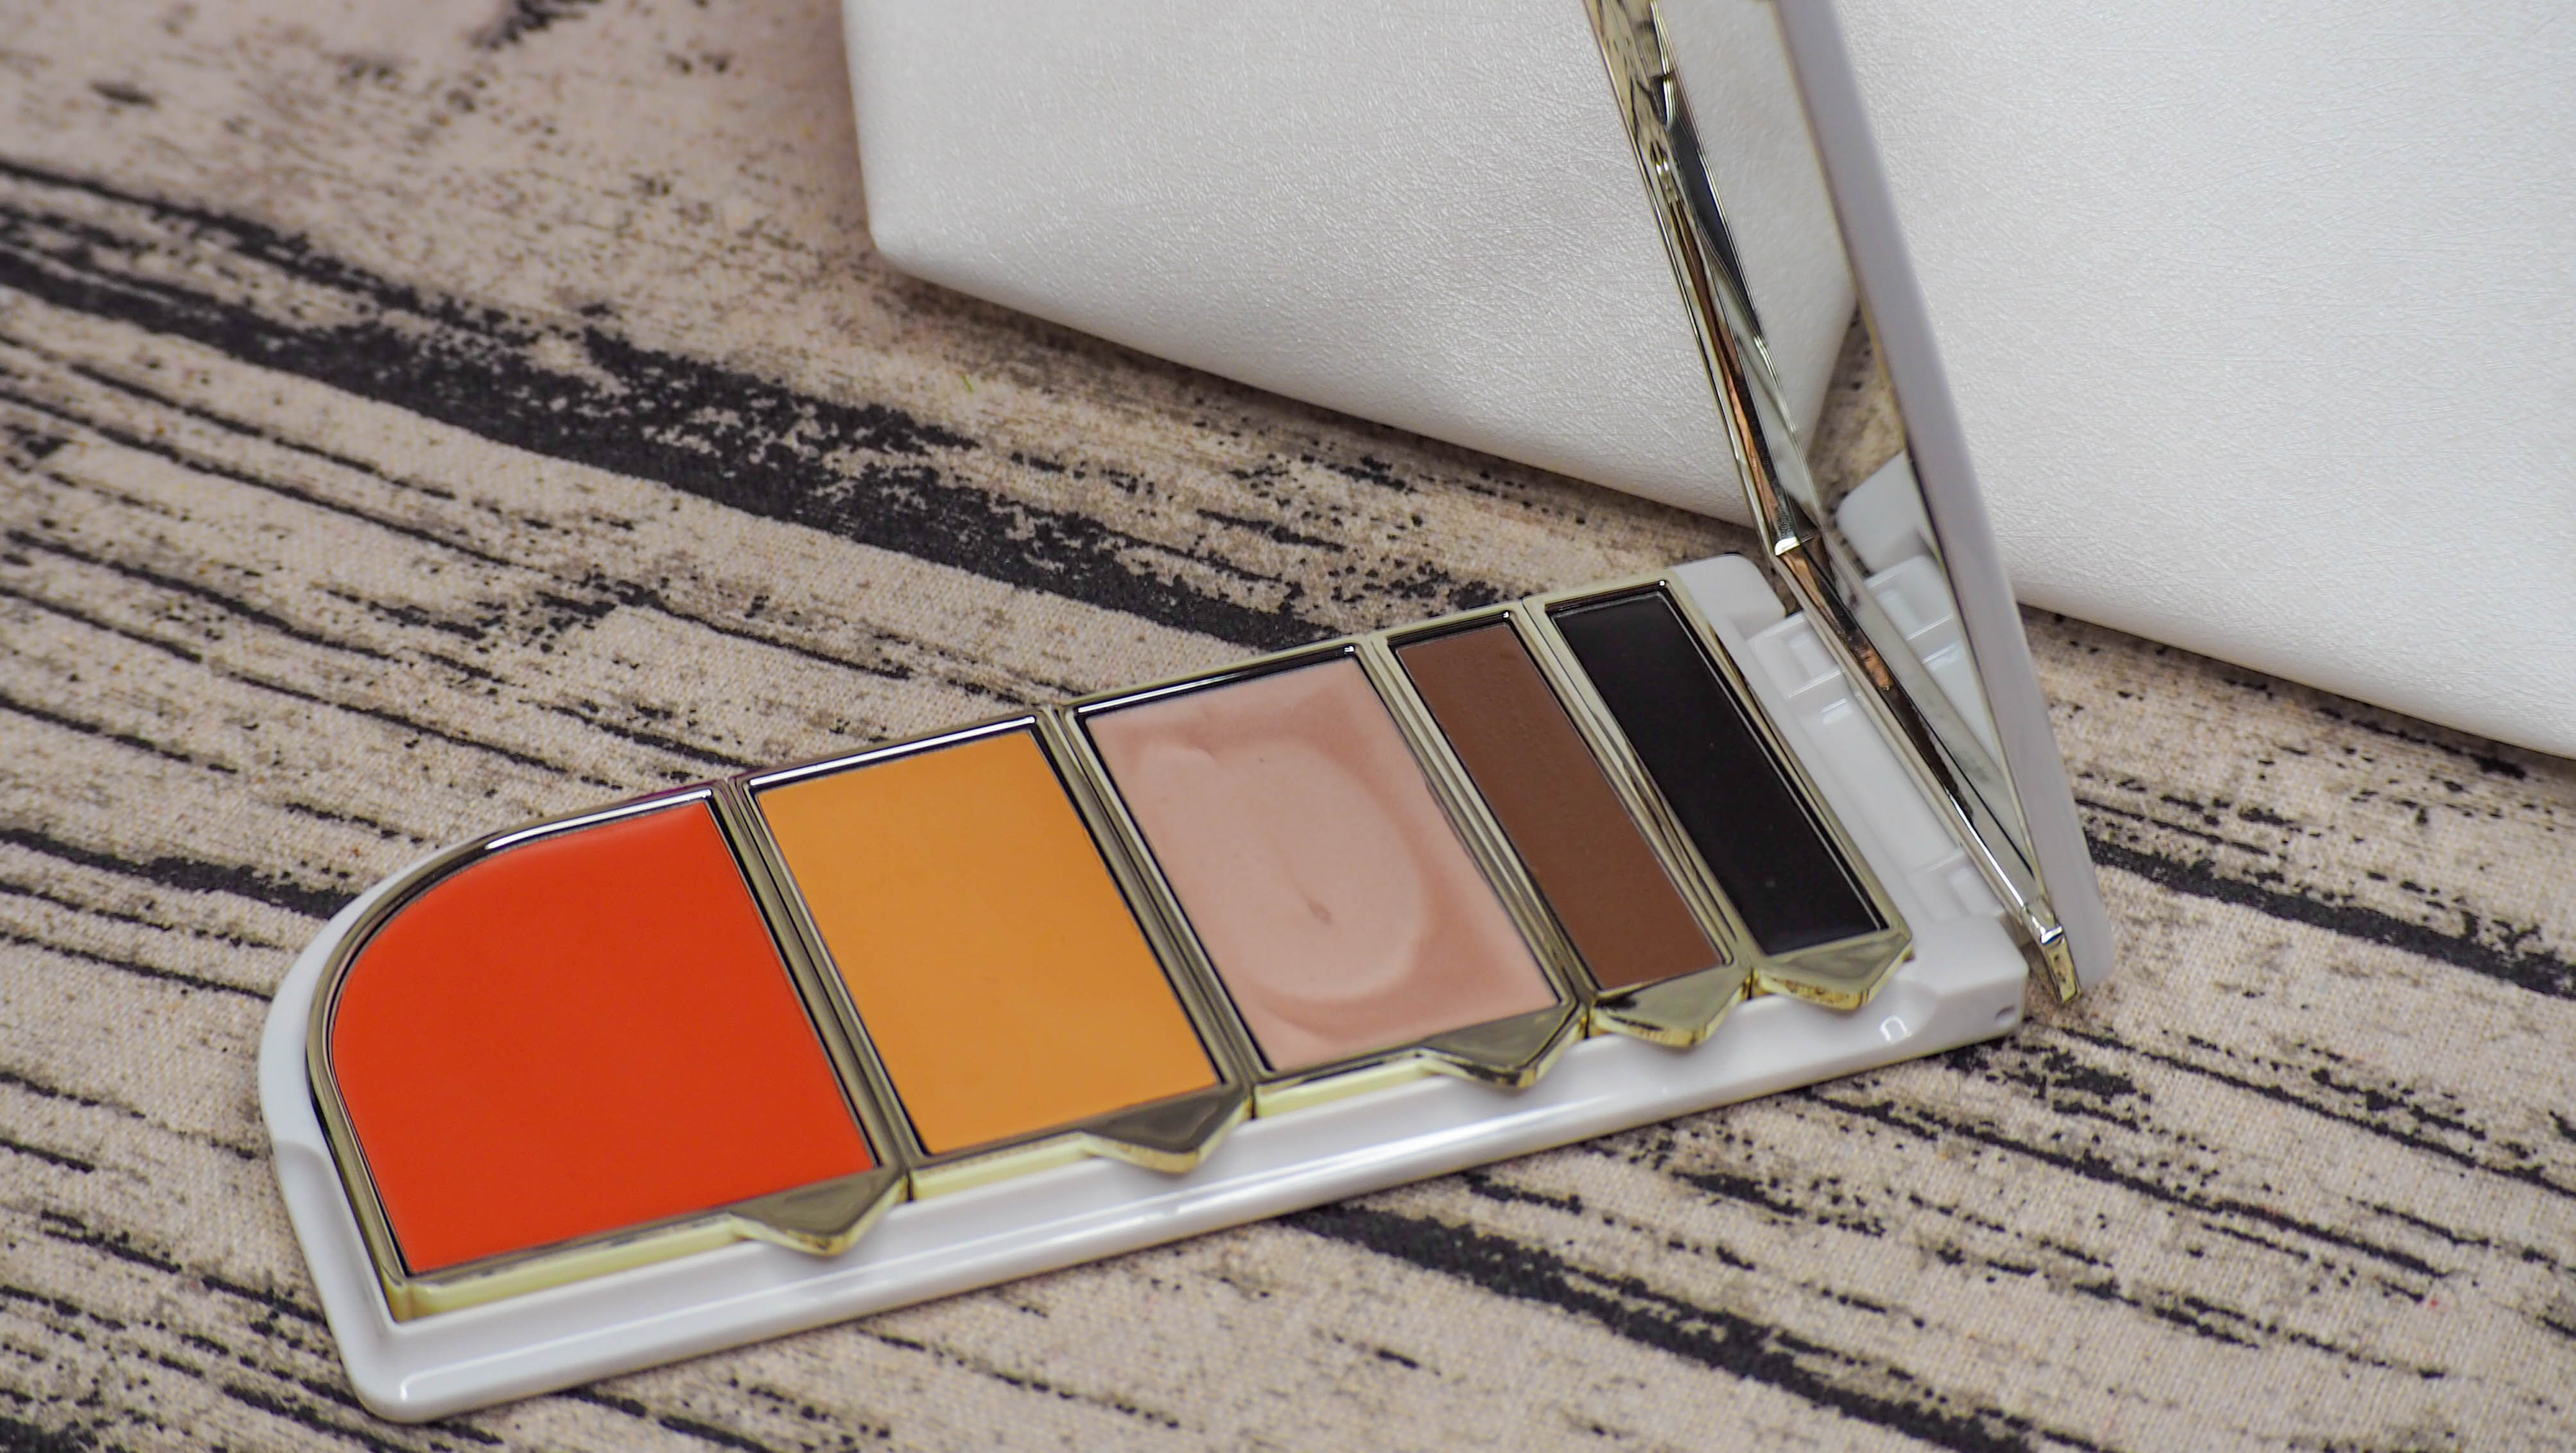 Tropic Makeup Colour Palette